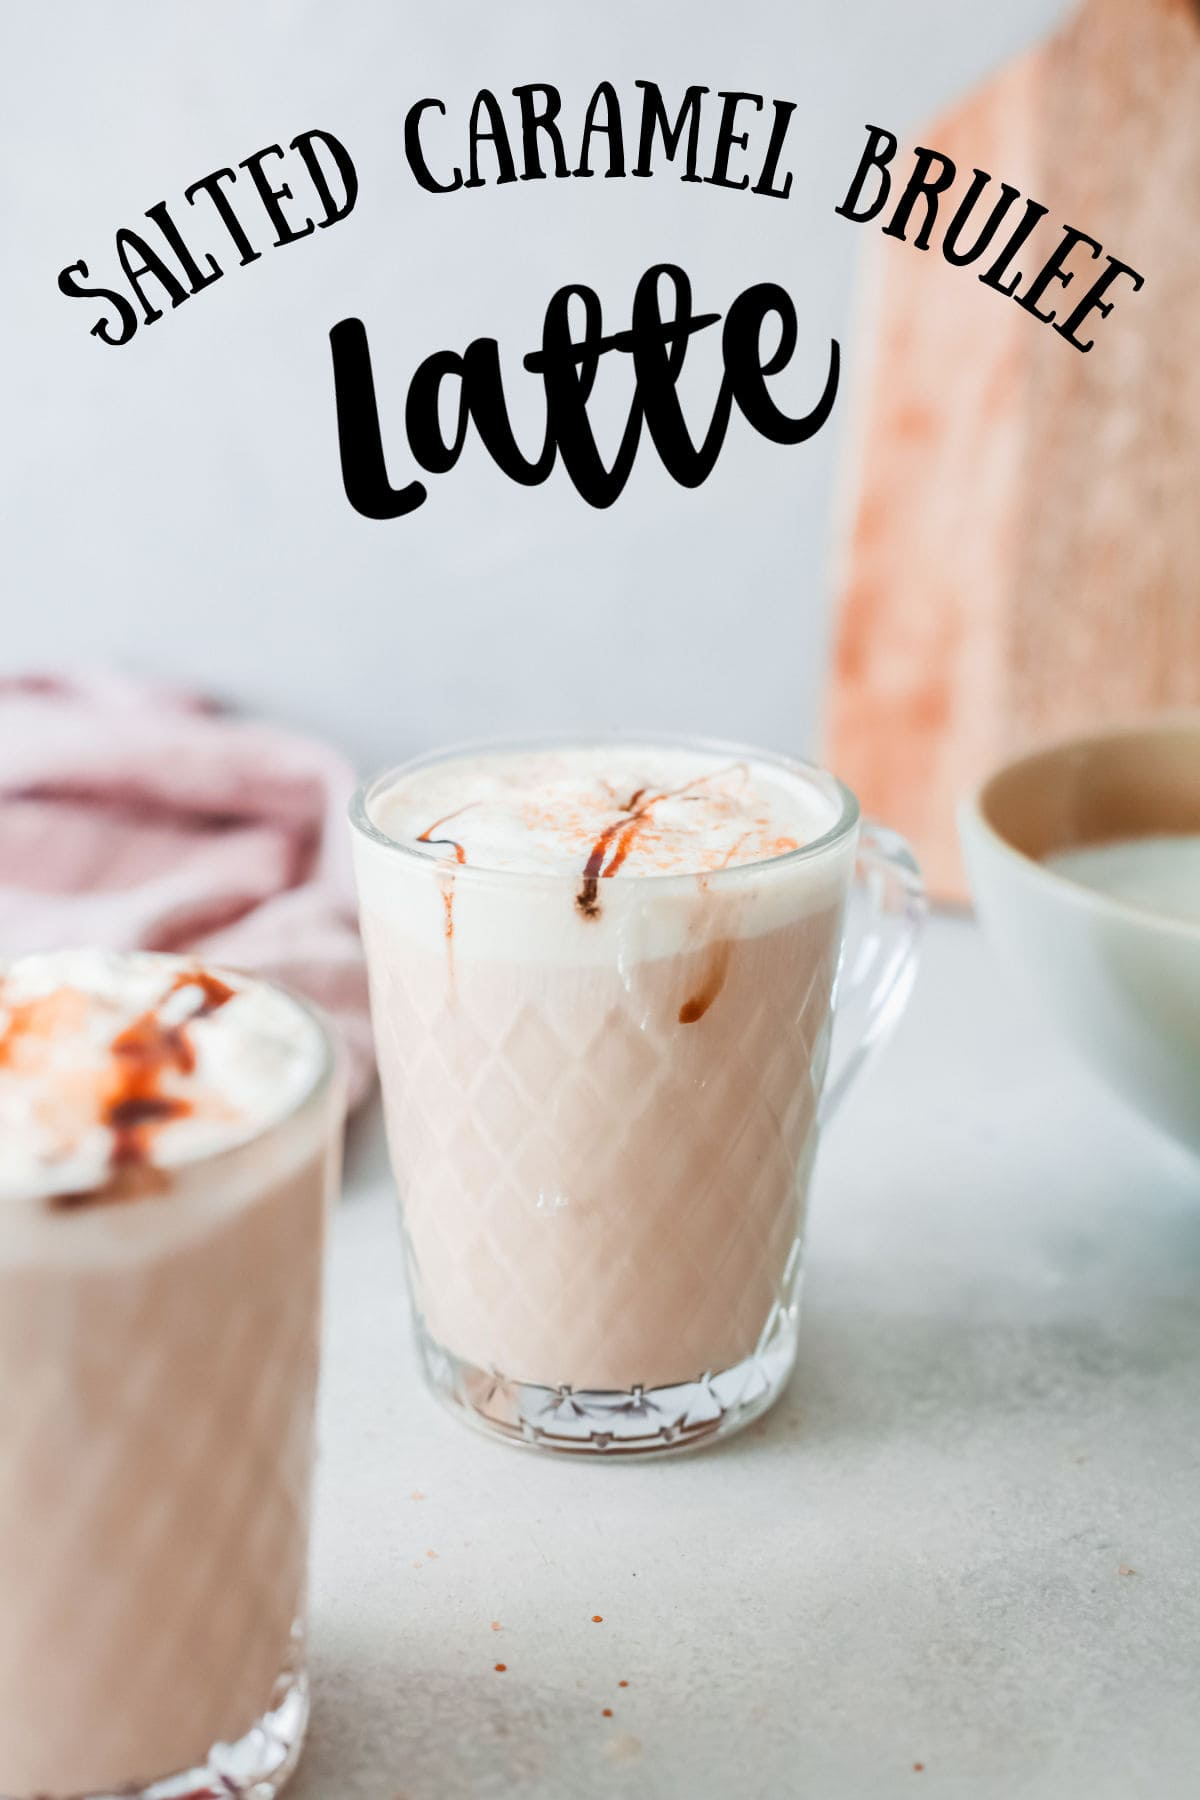 A salted caramel brulee latte in a glass coffee cup with title text overlay.